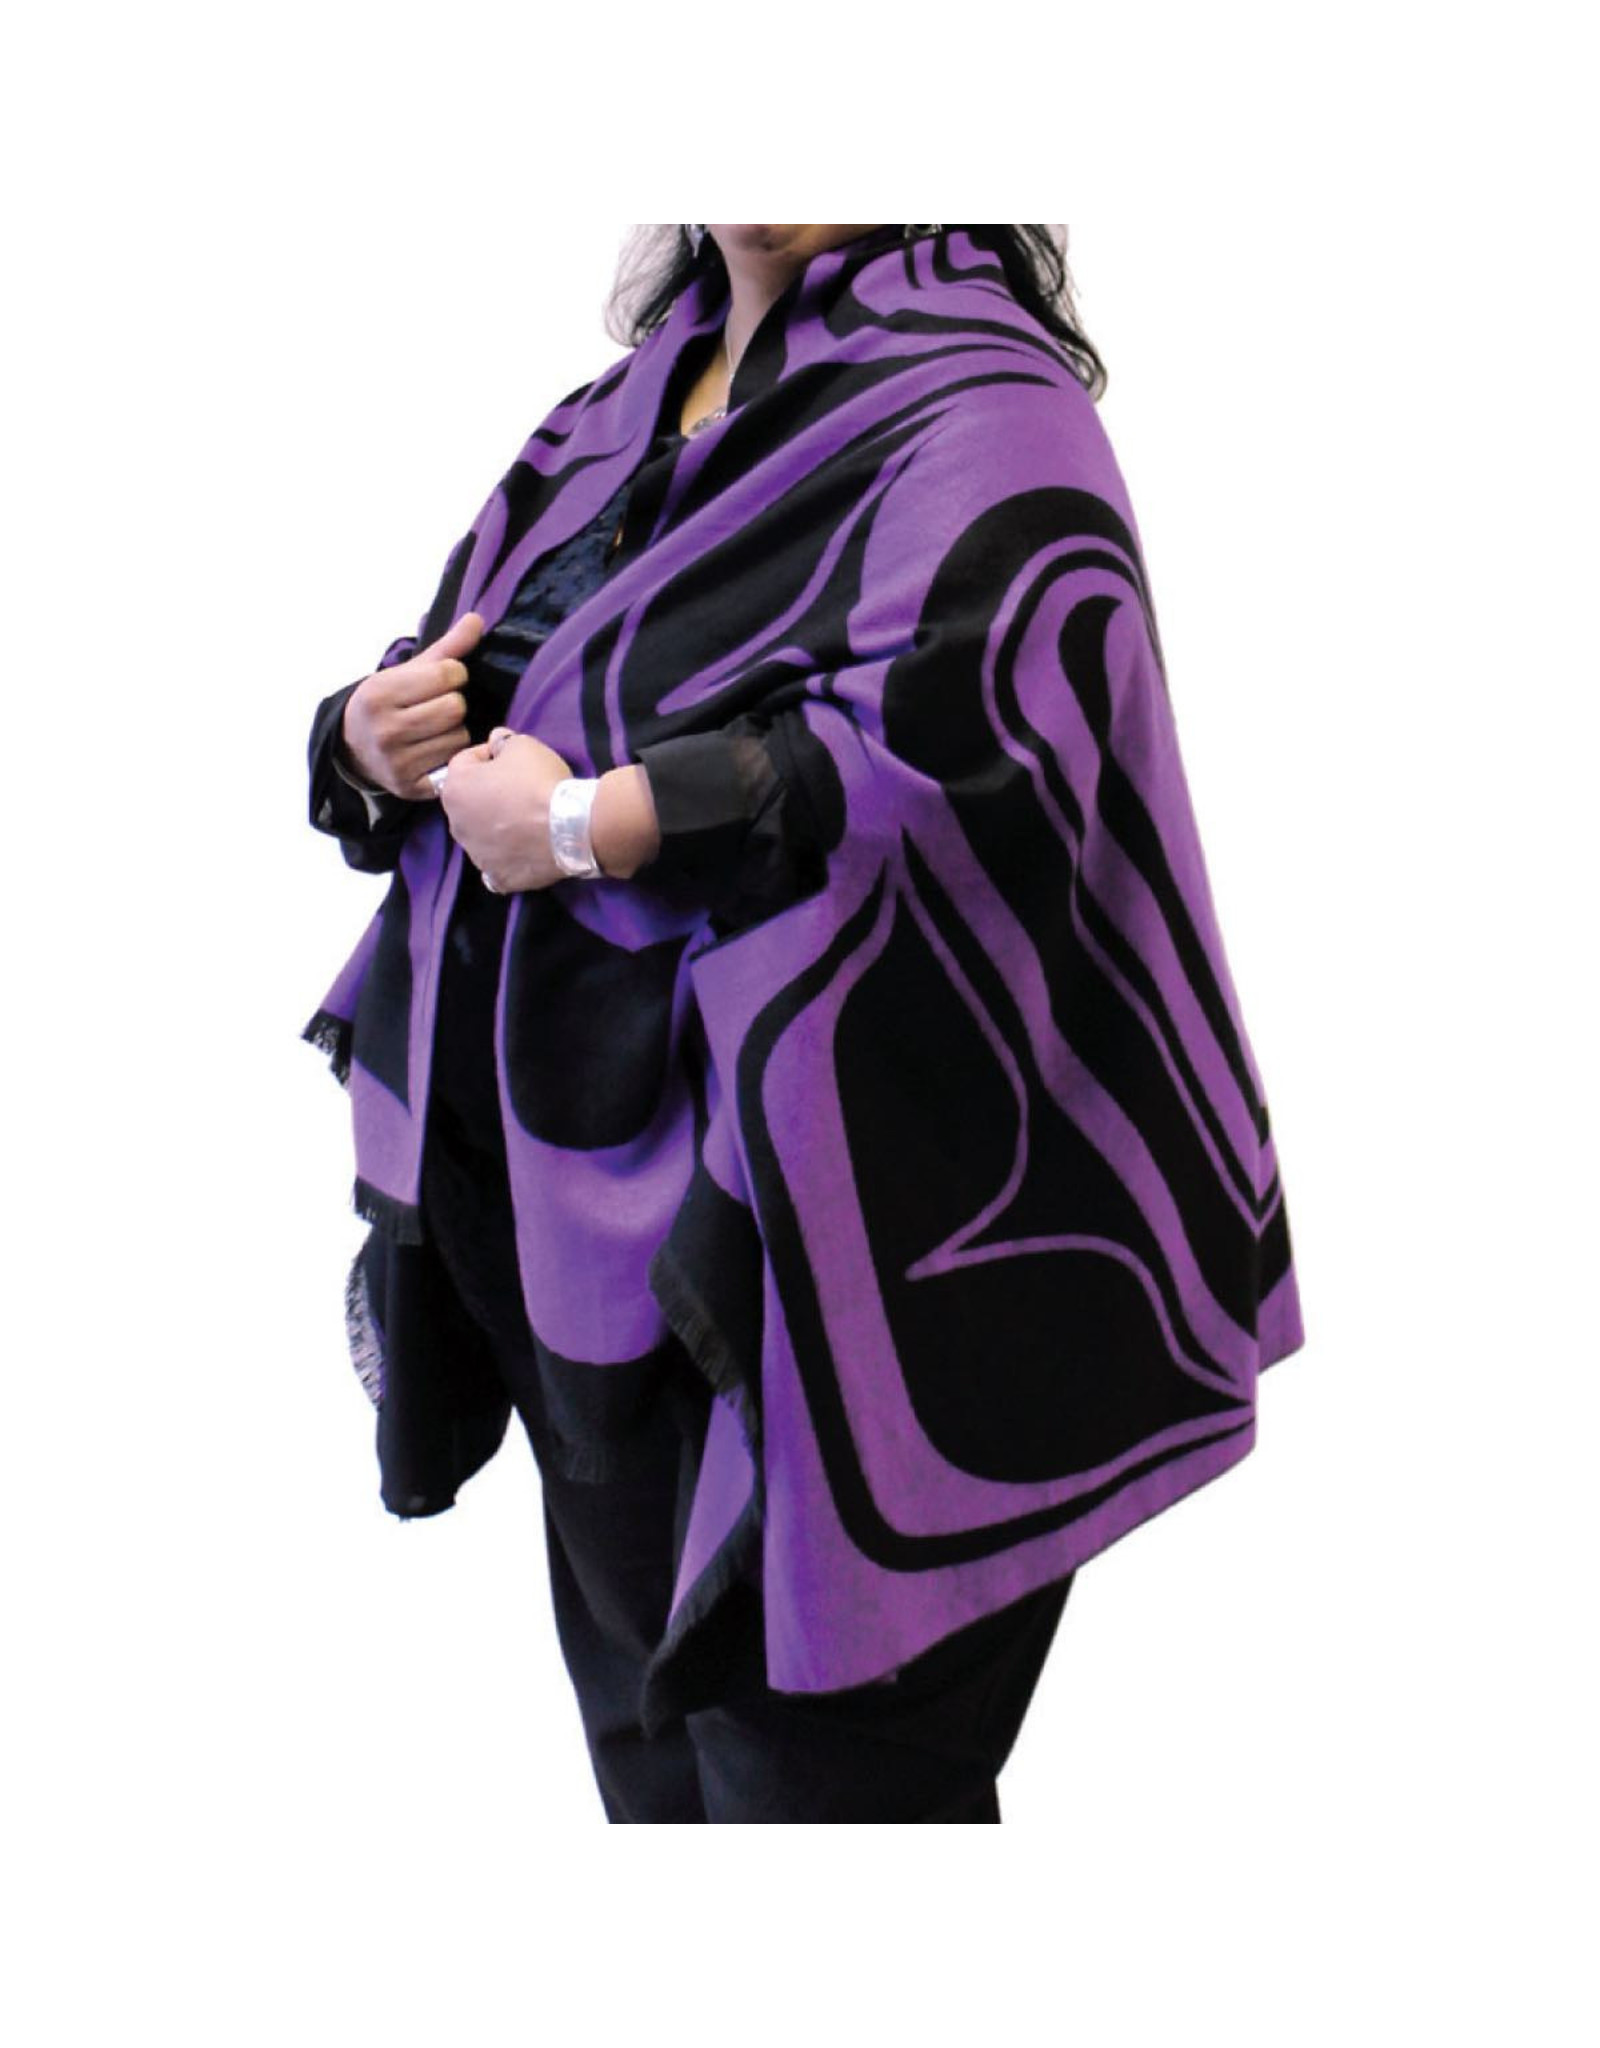 Reversible Fashion Cape - Eagle by Roger Smith (Black & Purple)